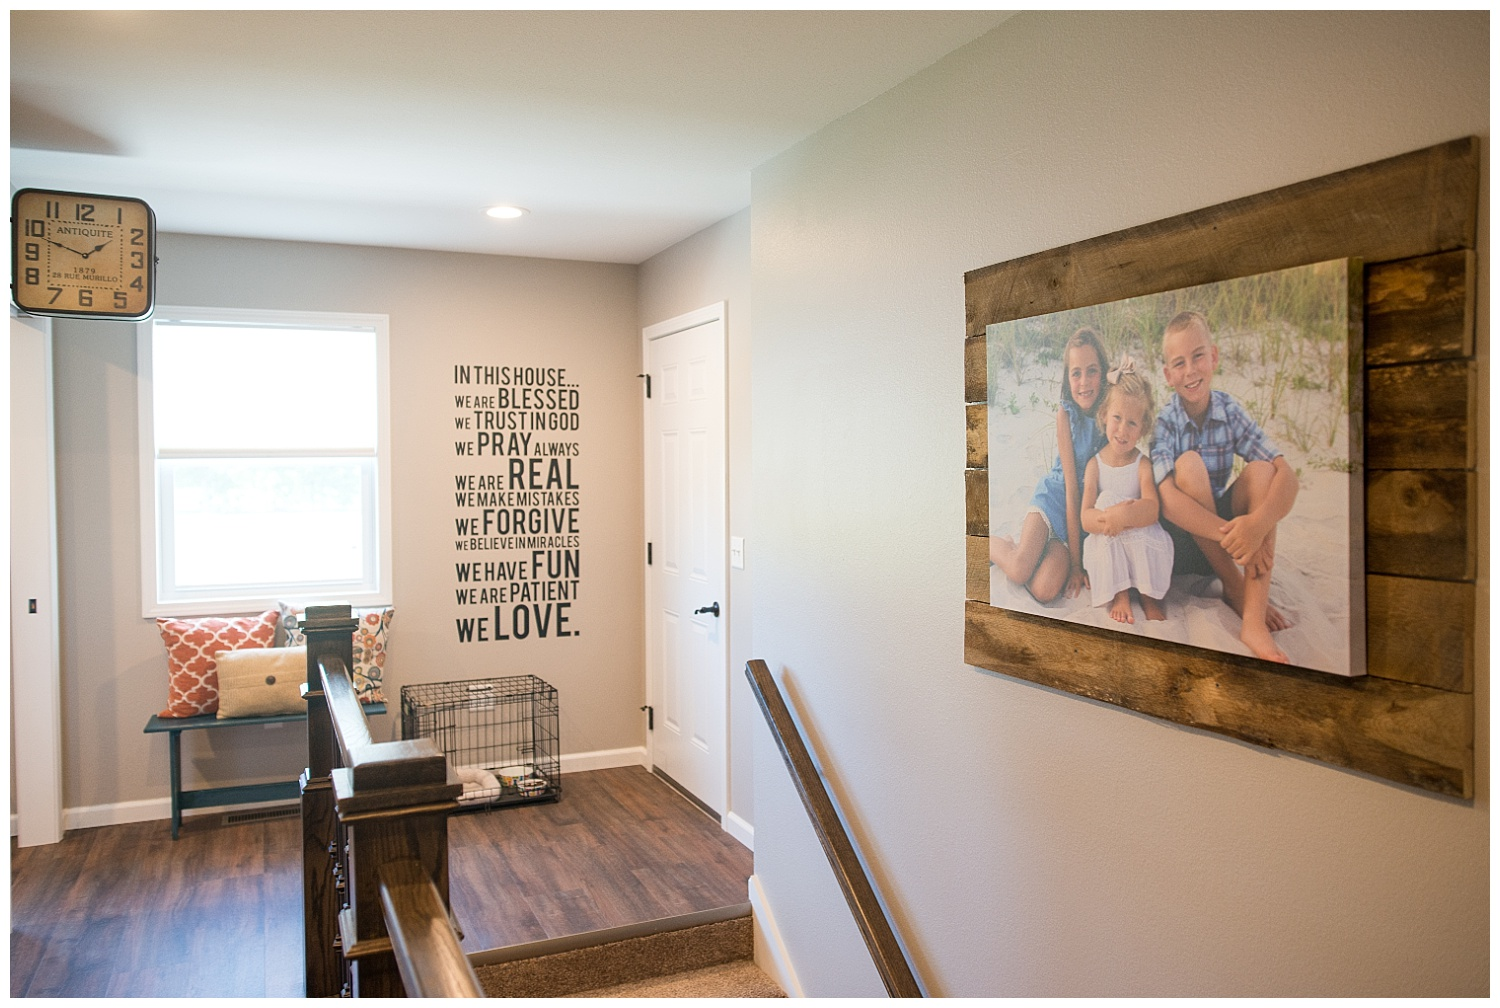 The double-sided clock from Fresh Digs hangs at the end of the lockers and leads into the laundry room.  Elizabeth bought 8' boards and cut them into planks to make this great family photo feature on the right.  And there on the wall is the family's philosophy.